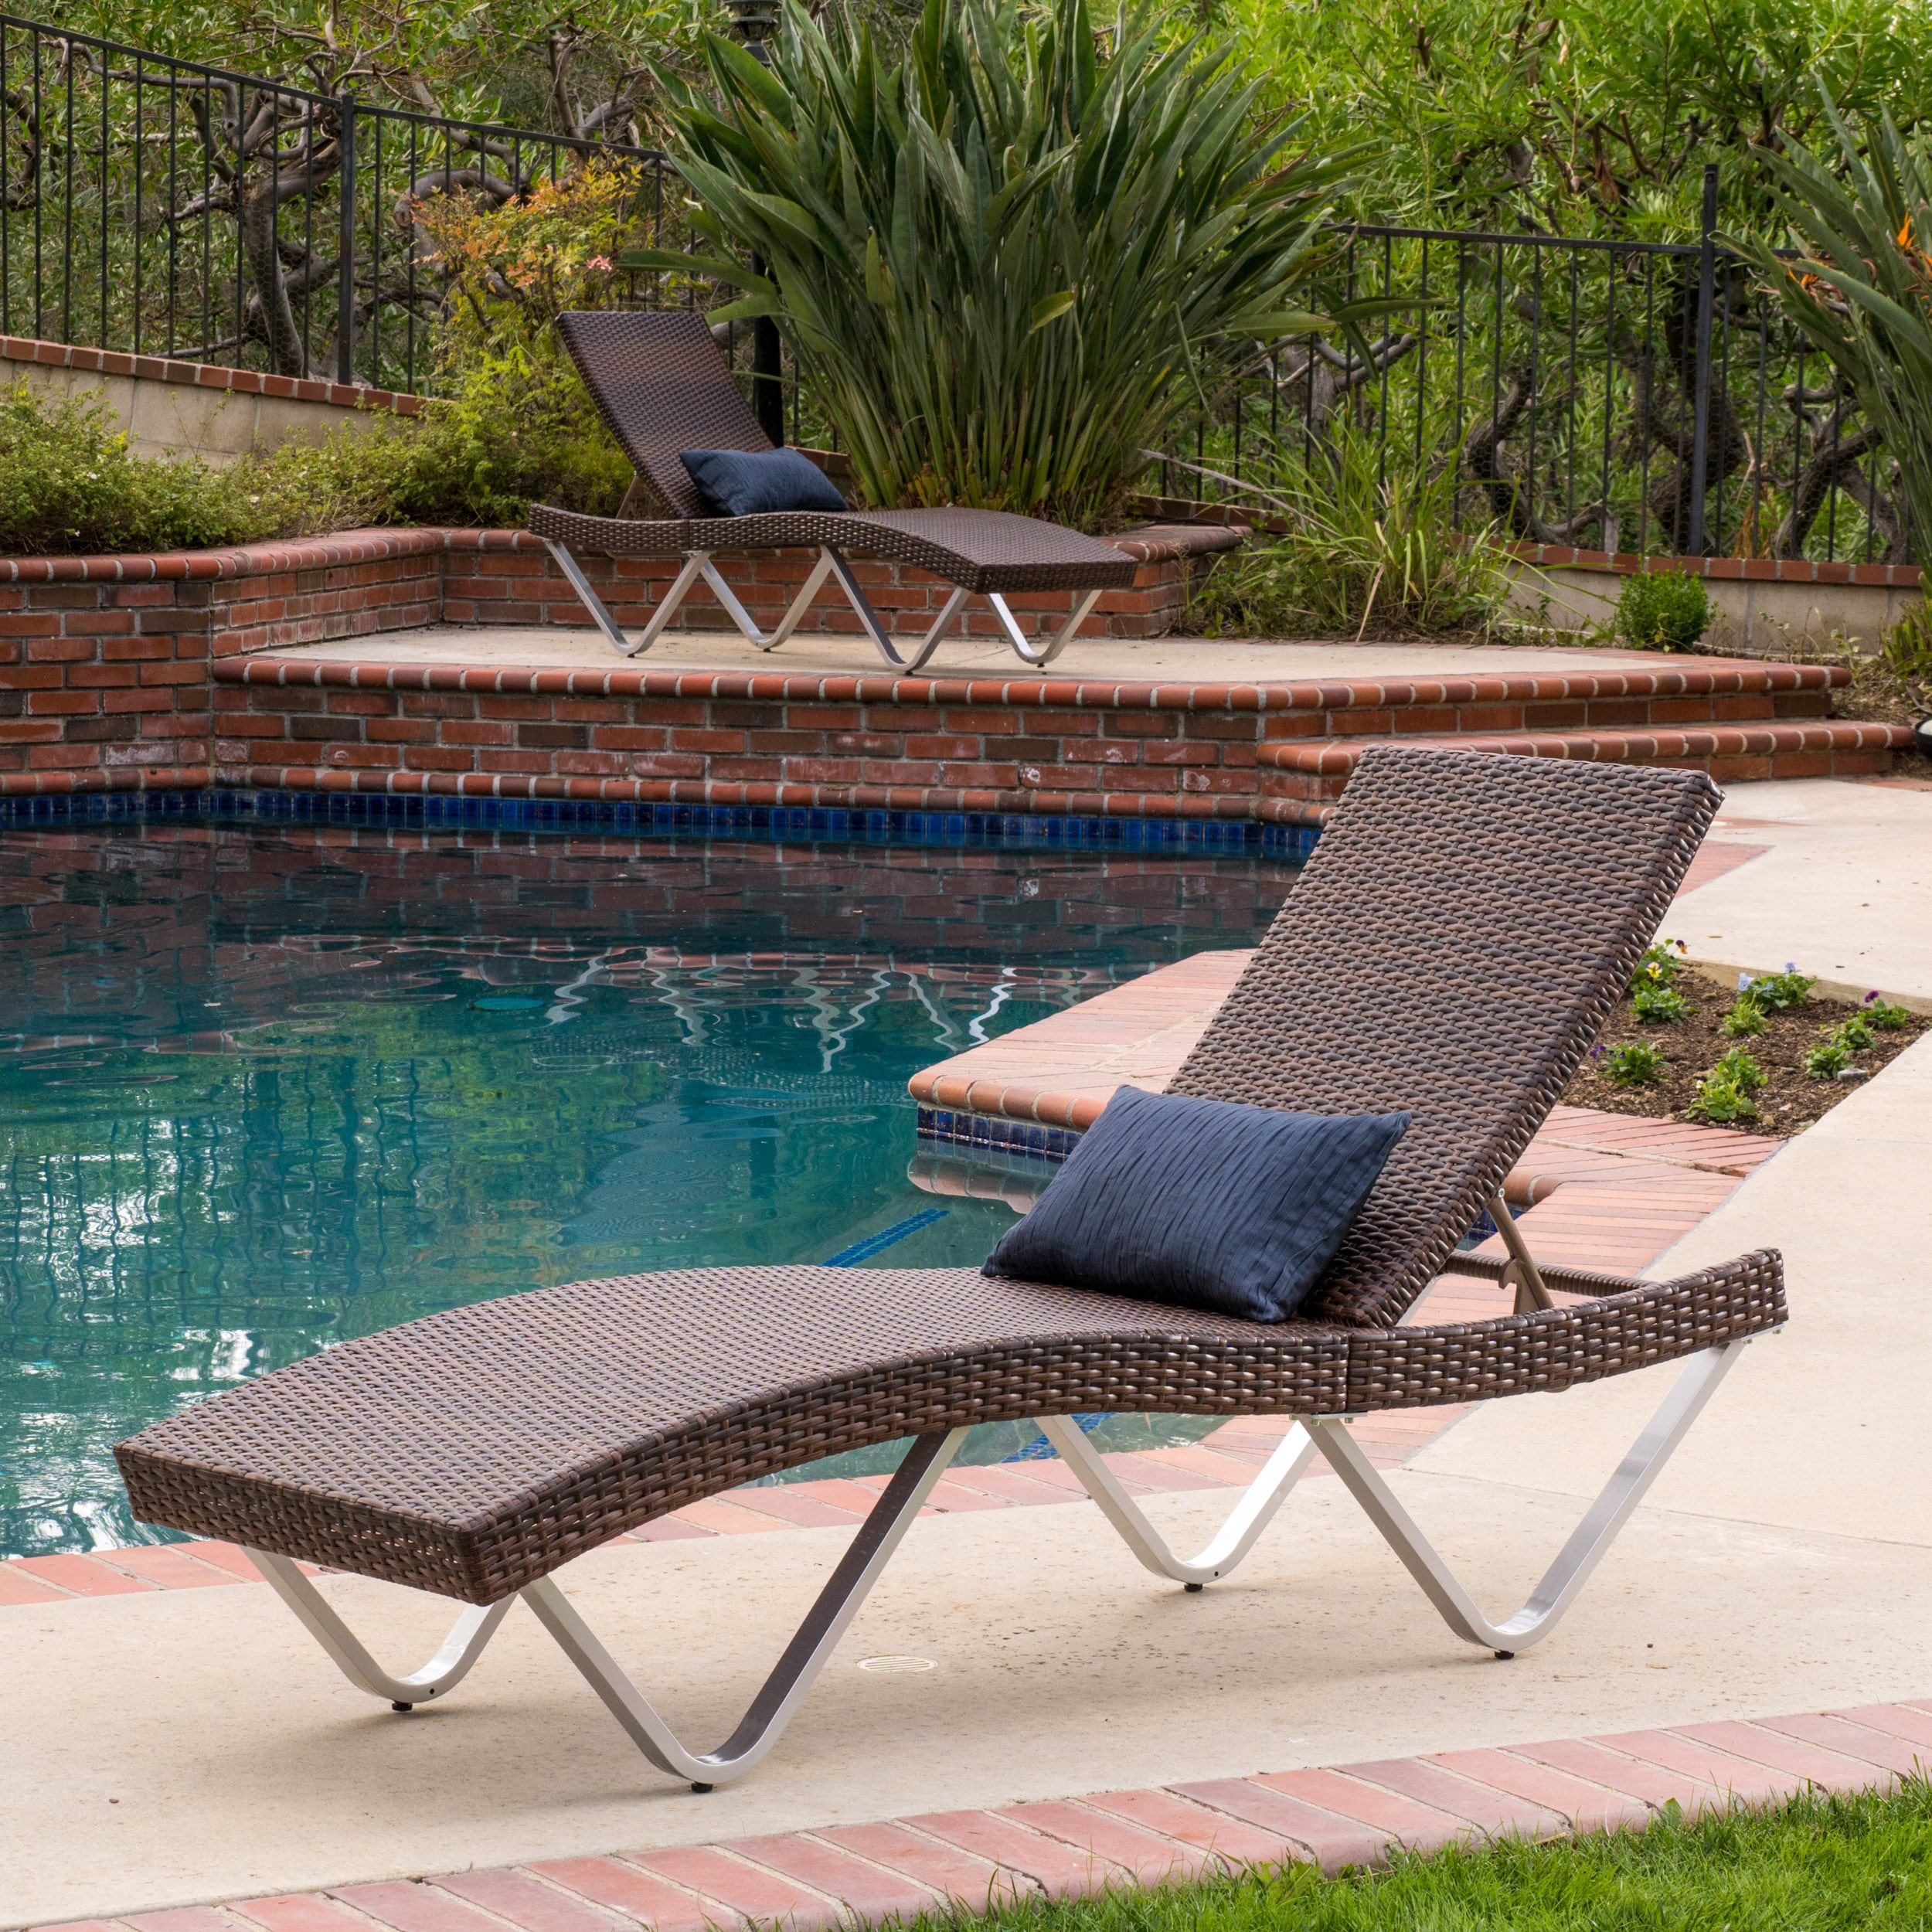 Christopher Knight Home San Marco Outdoor Wicker Chaise Lounge (Set of 2) by